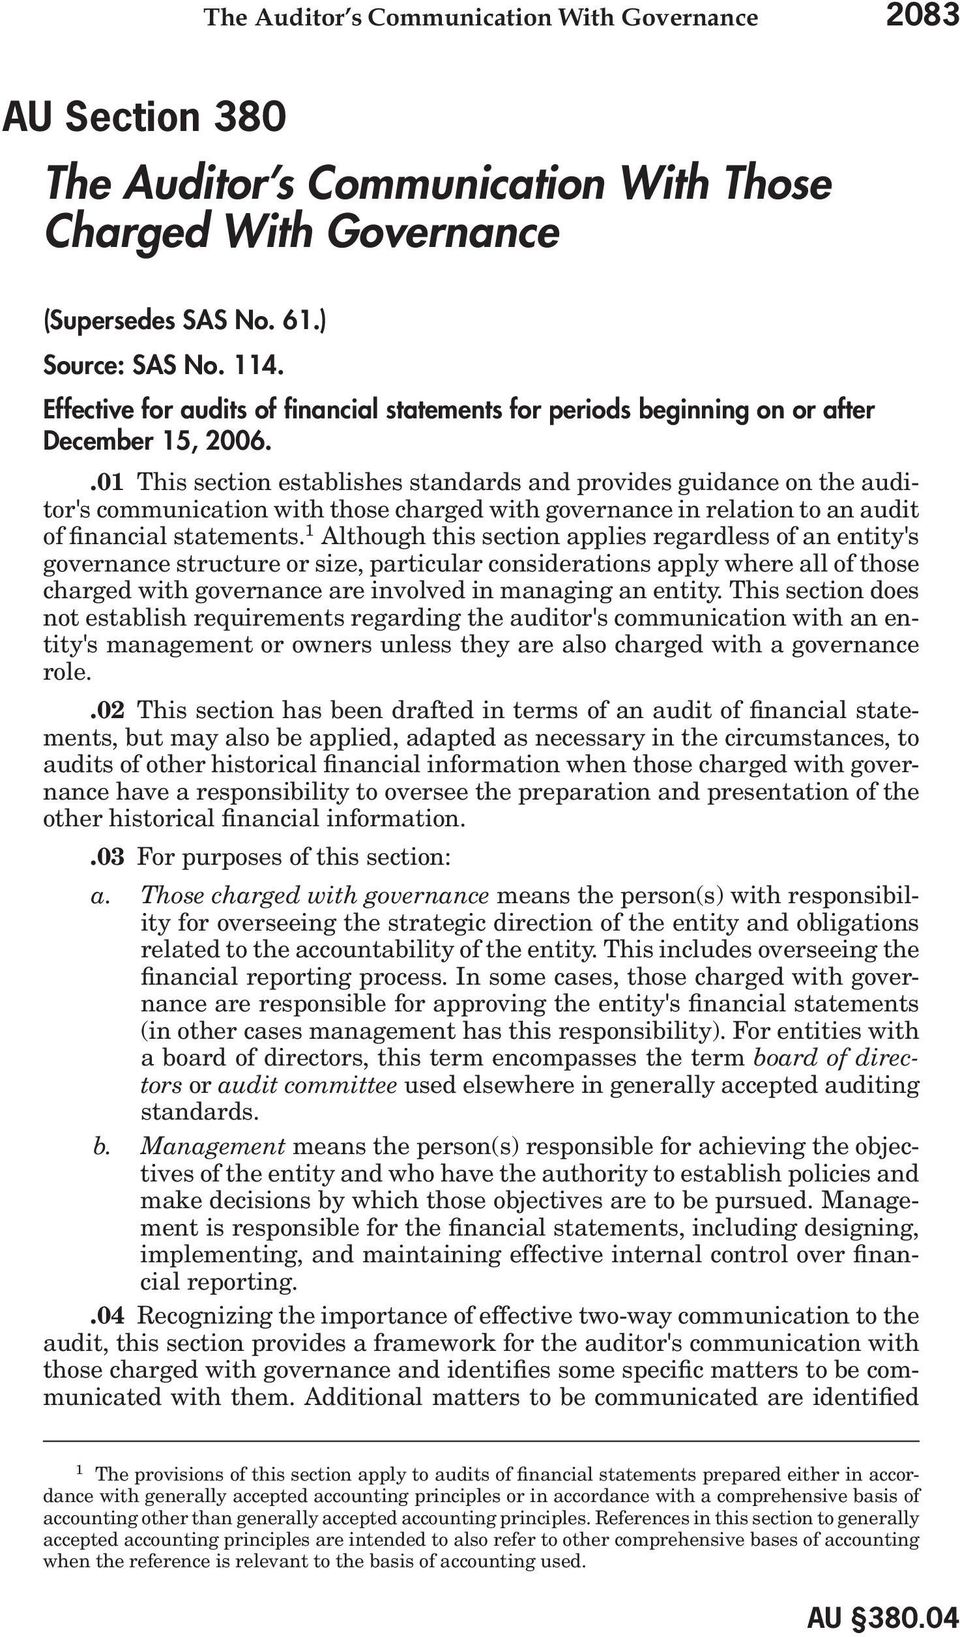 .01 This section establishes standards and provides guidance on the auditor's communication with those charged with governance in relation to an audit of financial statements.